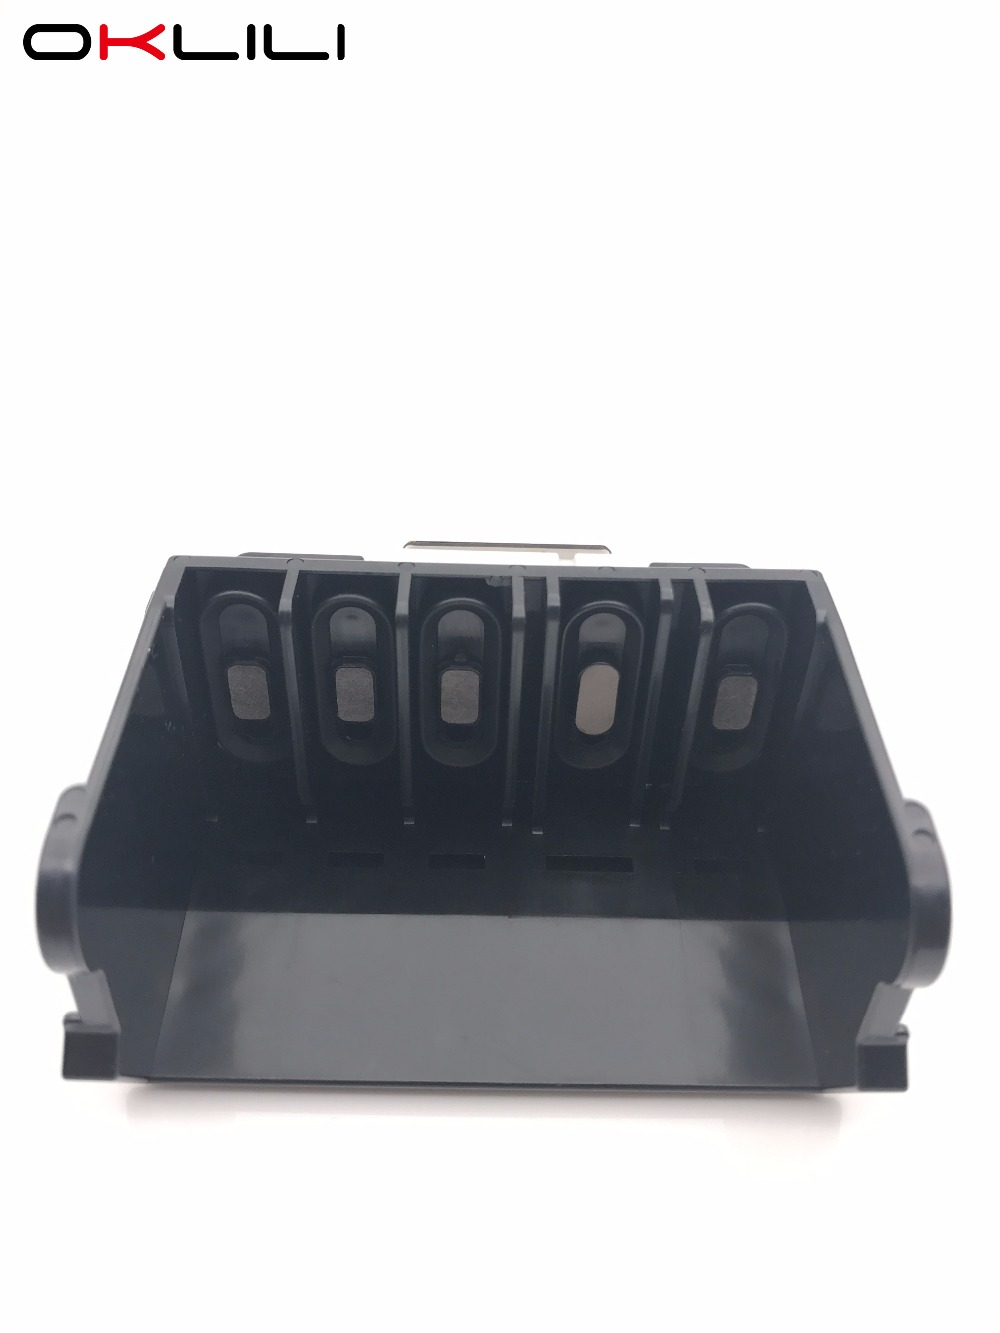 OKLILI ORIGINAL QY6-0066 QY6-0066-000 Printhead Print Head Printer Head for Canon MX7600 iX7000 qy6 0069 qy6 0069 qy60069 qy6 0069 000 printhead print head printer head remanufactured for canon mini260 mini320